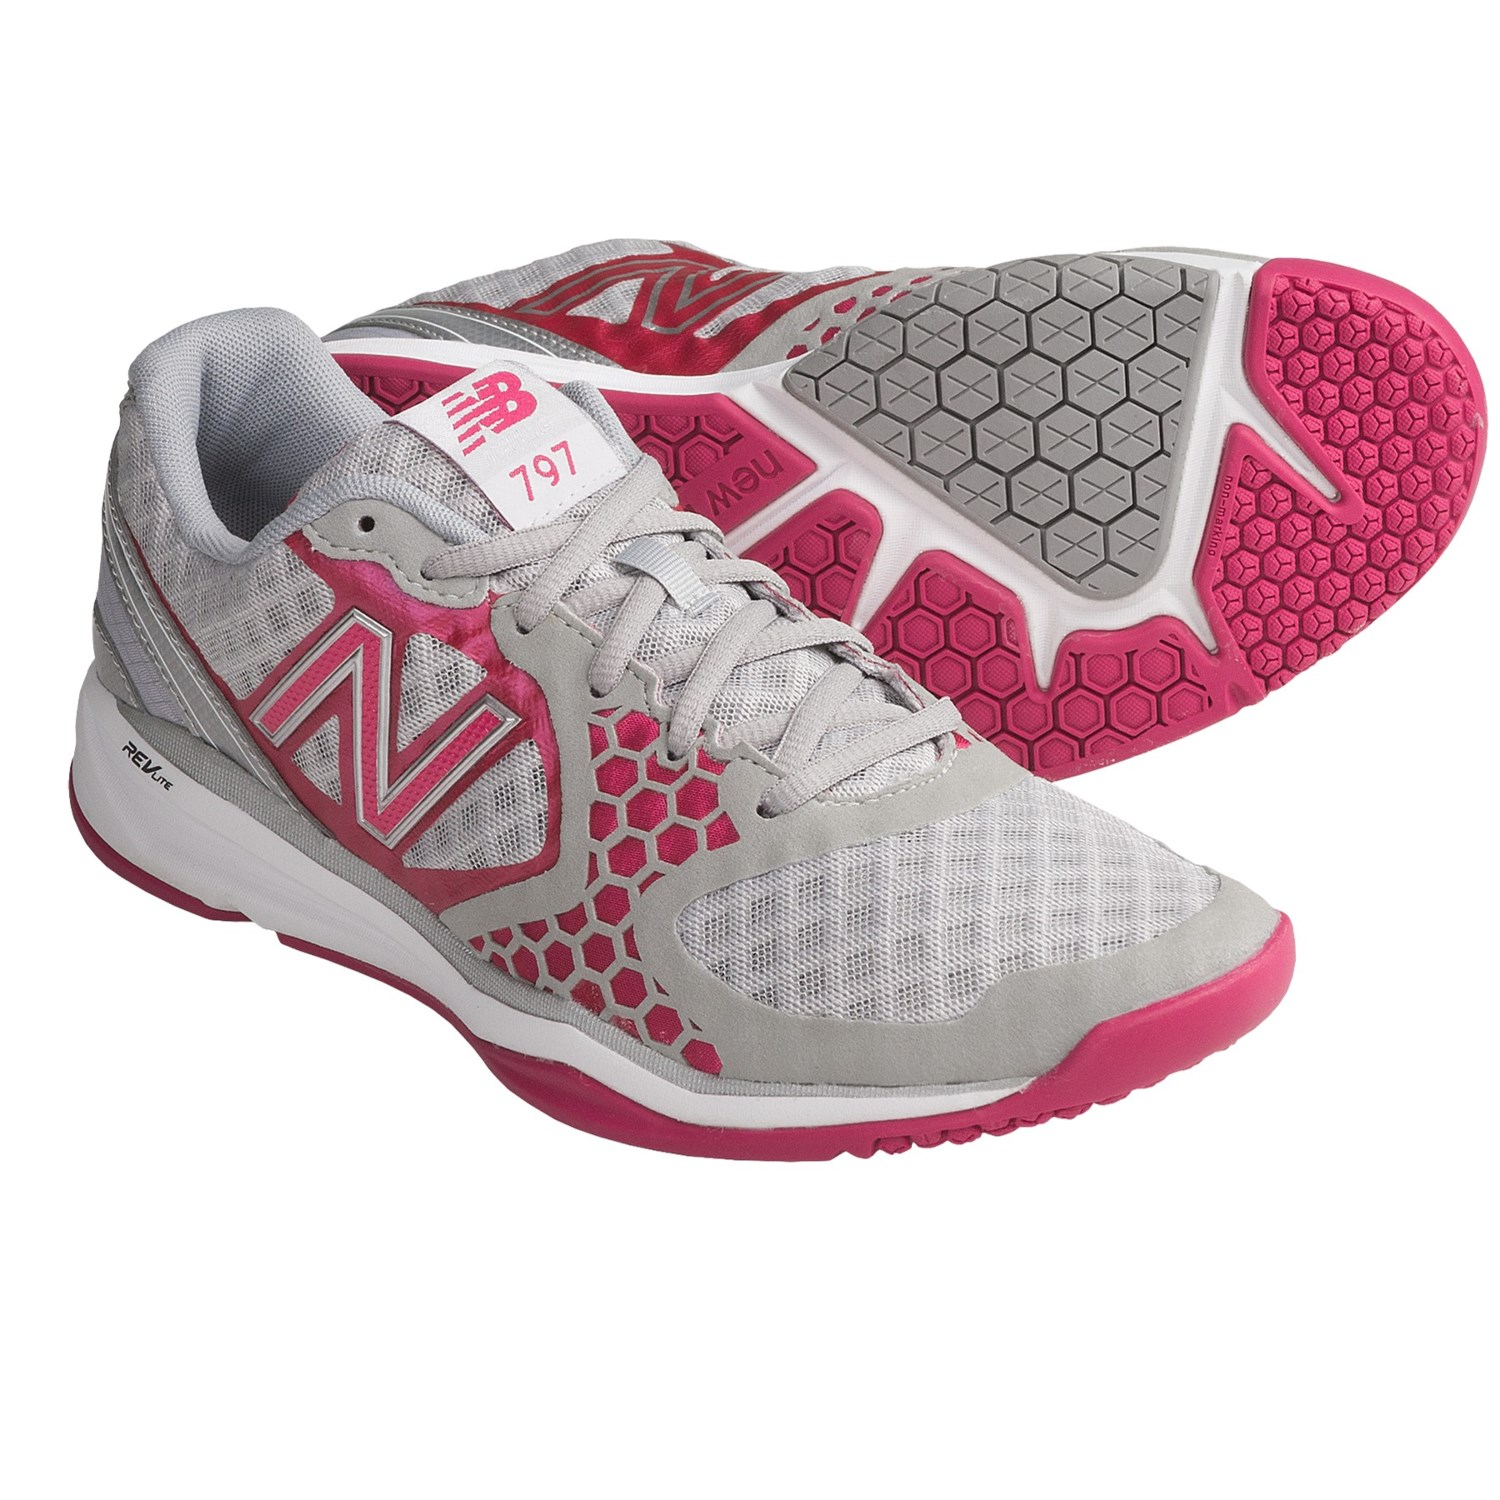 new balance cross training shoes for zumba